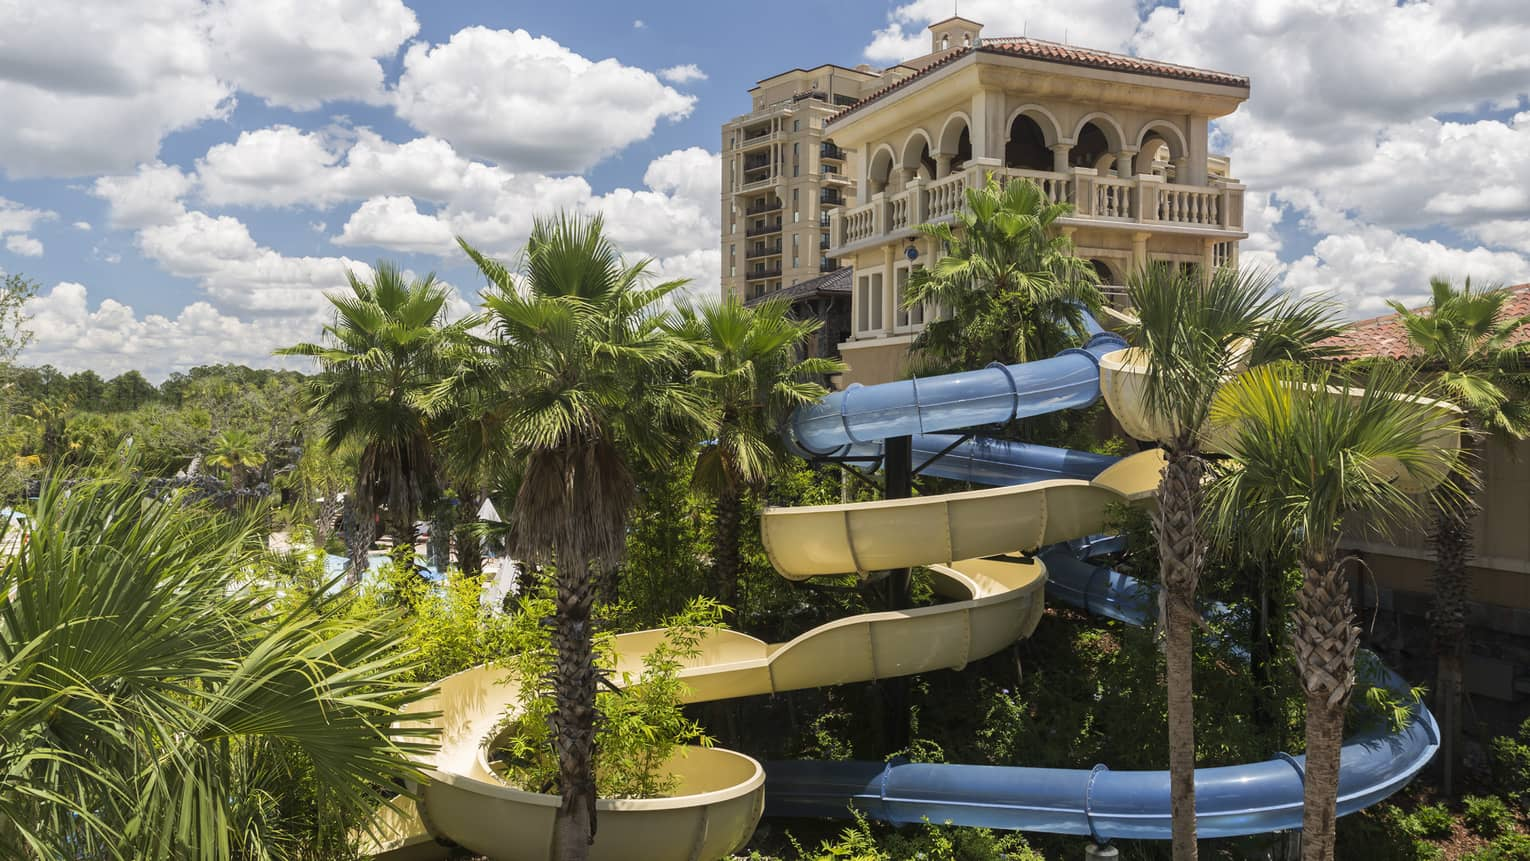 Building over winding outdoor water slide, palm trees